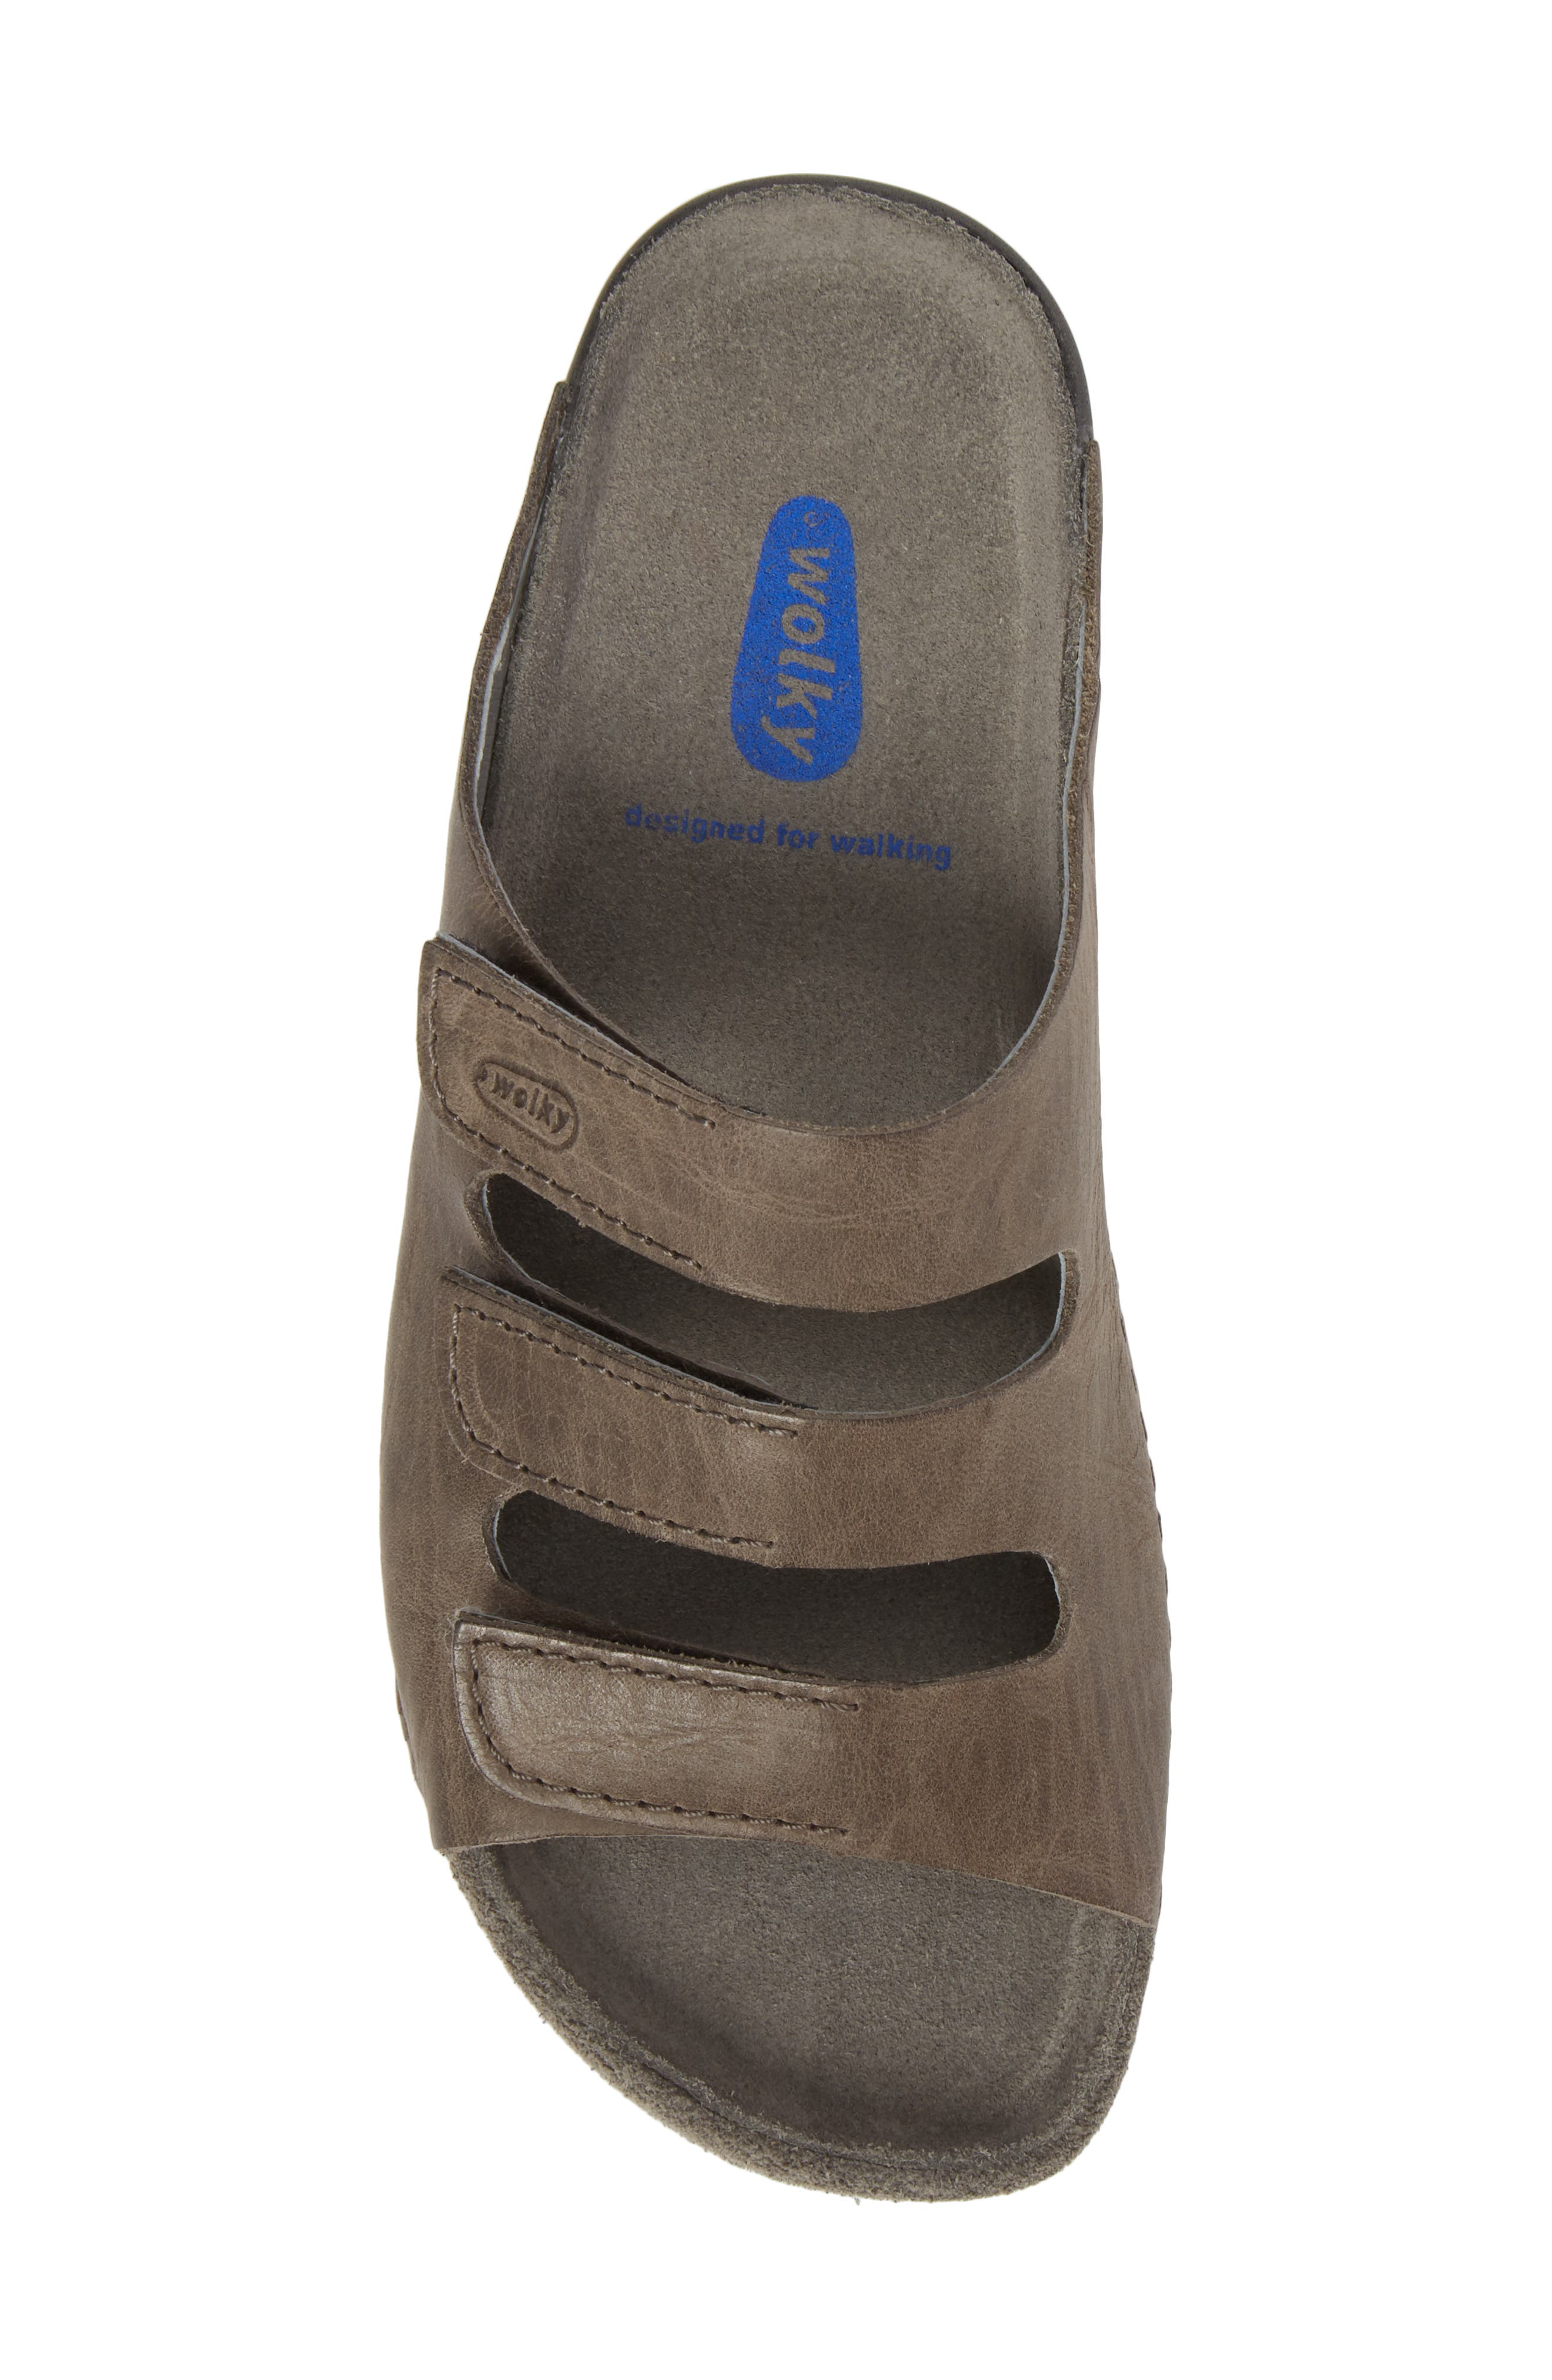 Nomad Slide Sandal,                             Alternate thumbnail 5, color,                             SLATE LEATHER